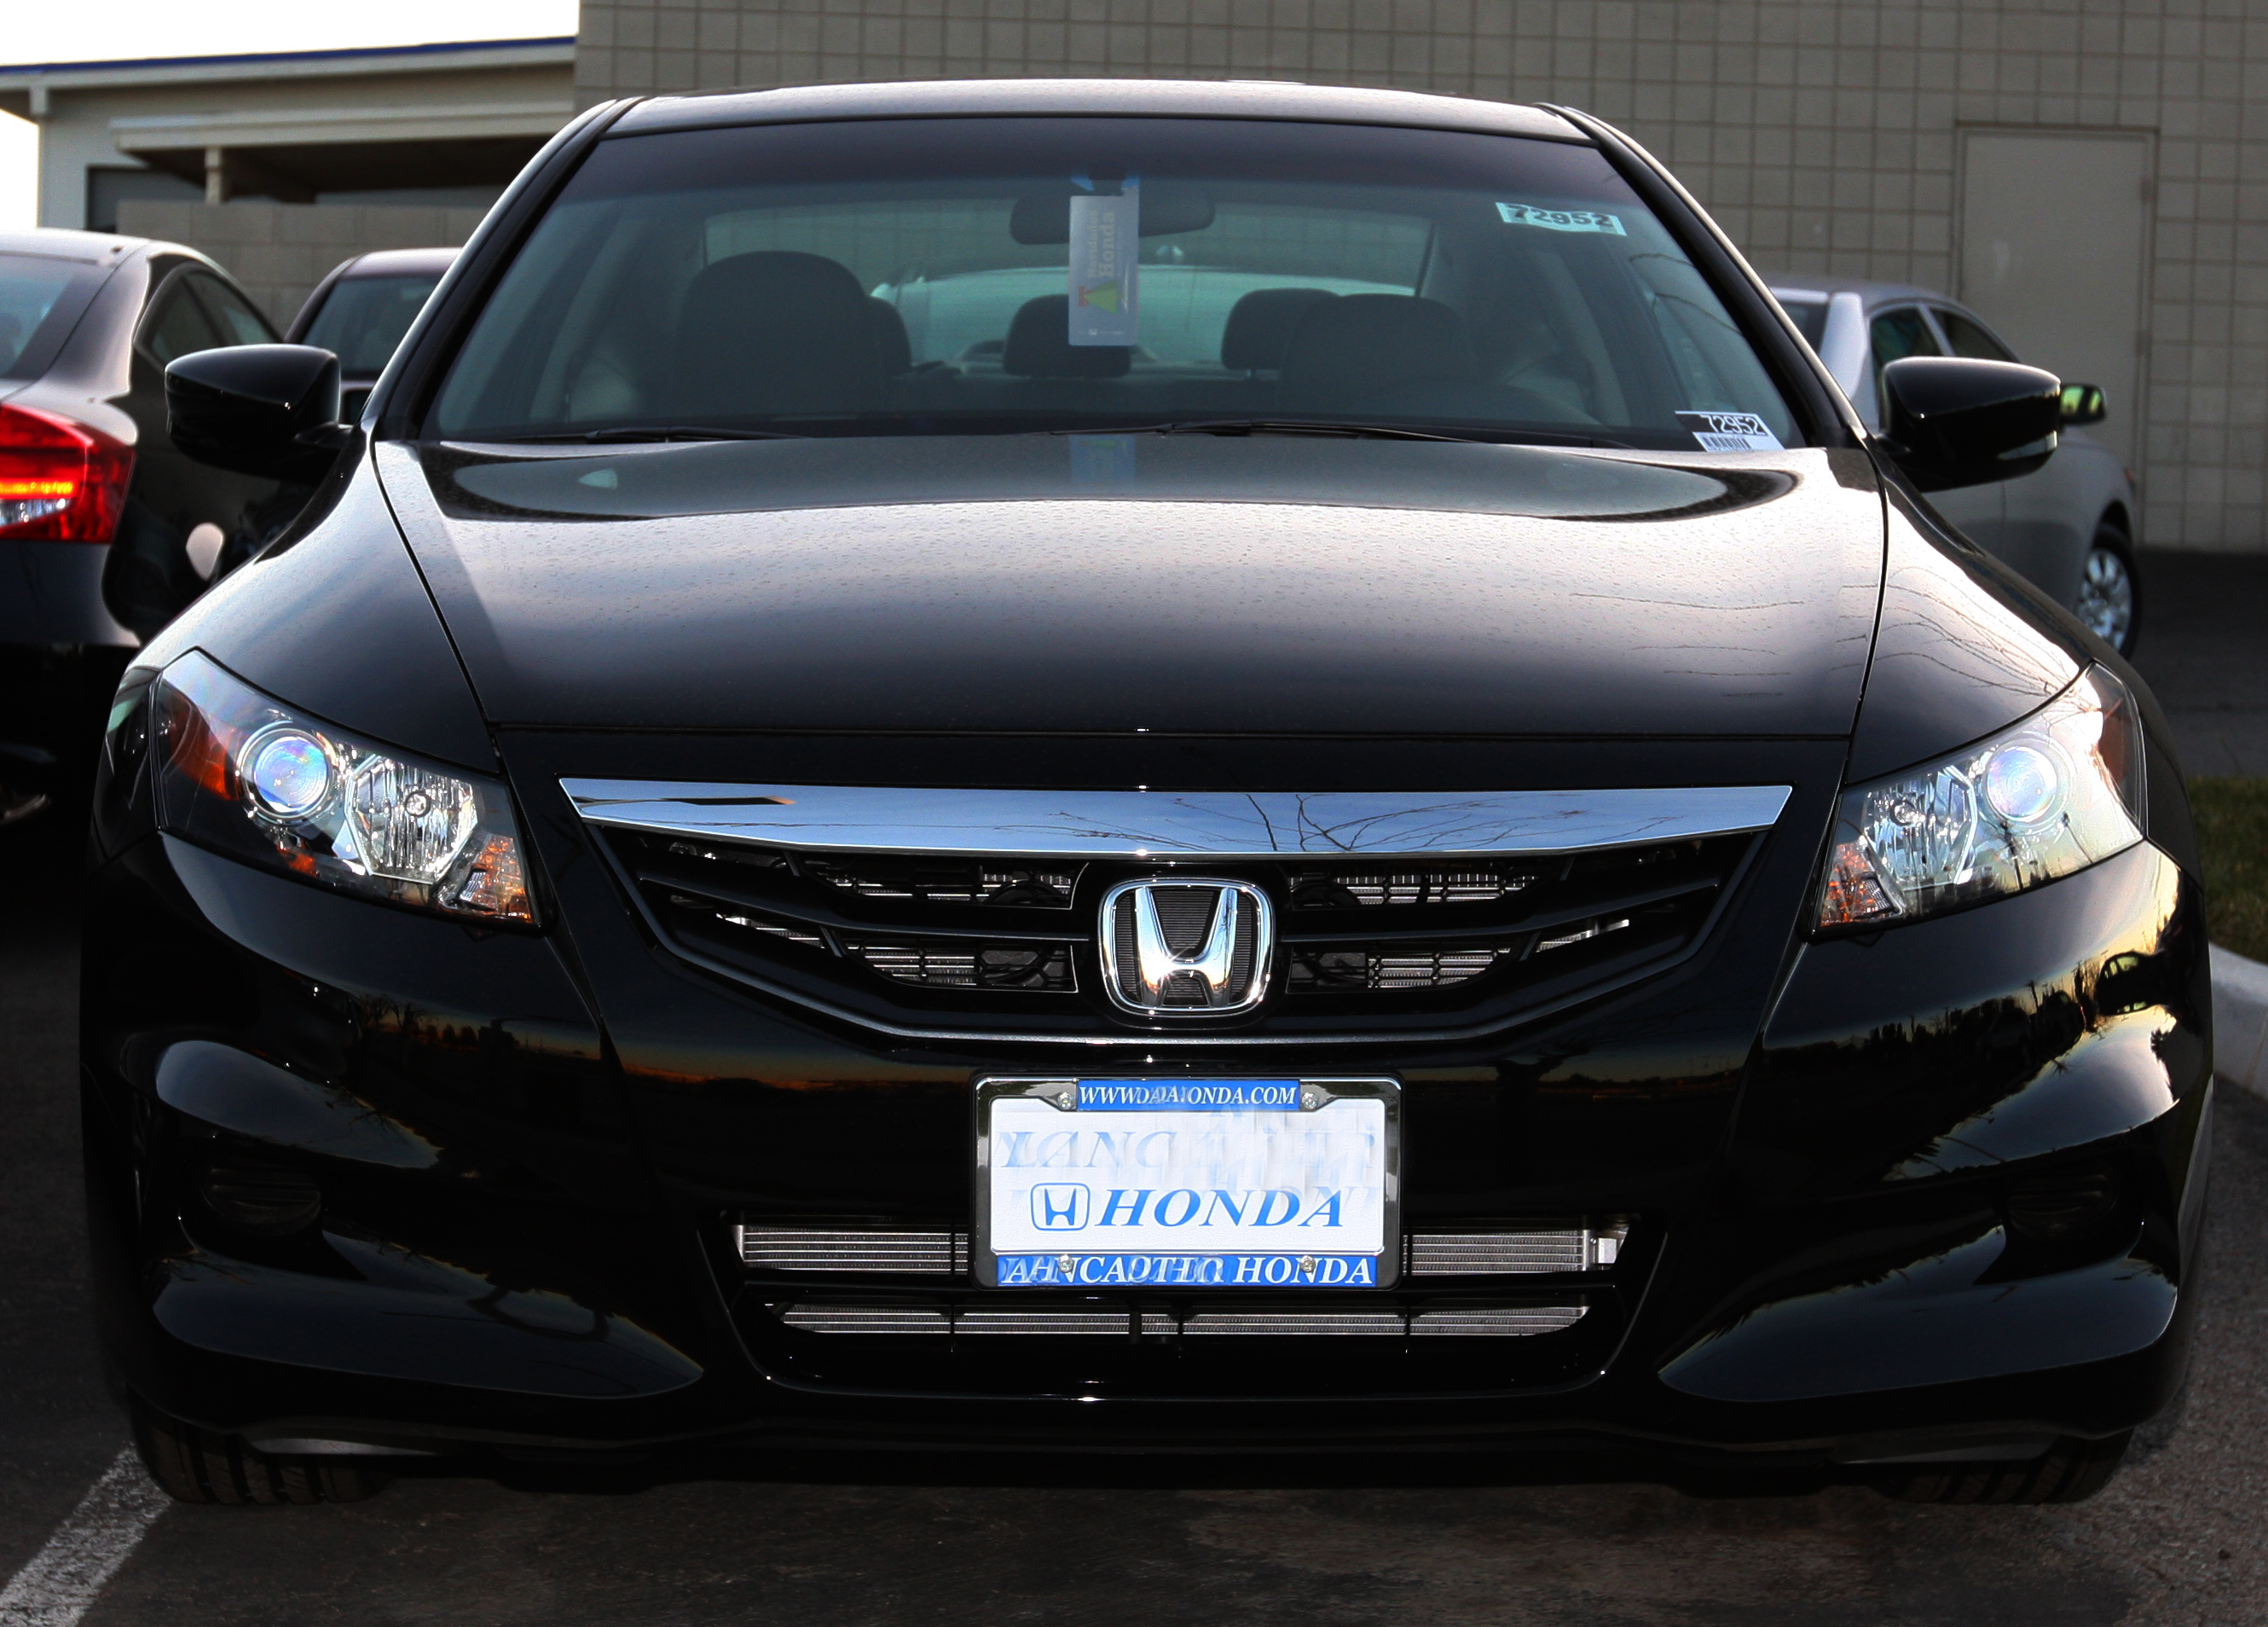 Honda Civic The Best Choice For Both Honda 2011 Sedan Amp Coupe